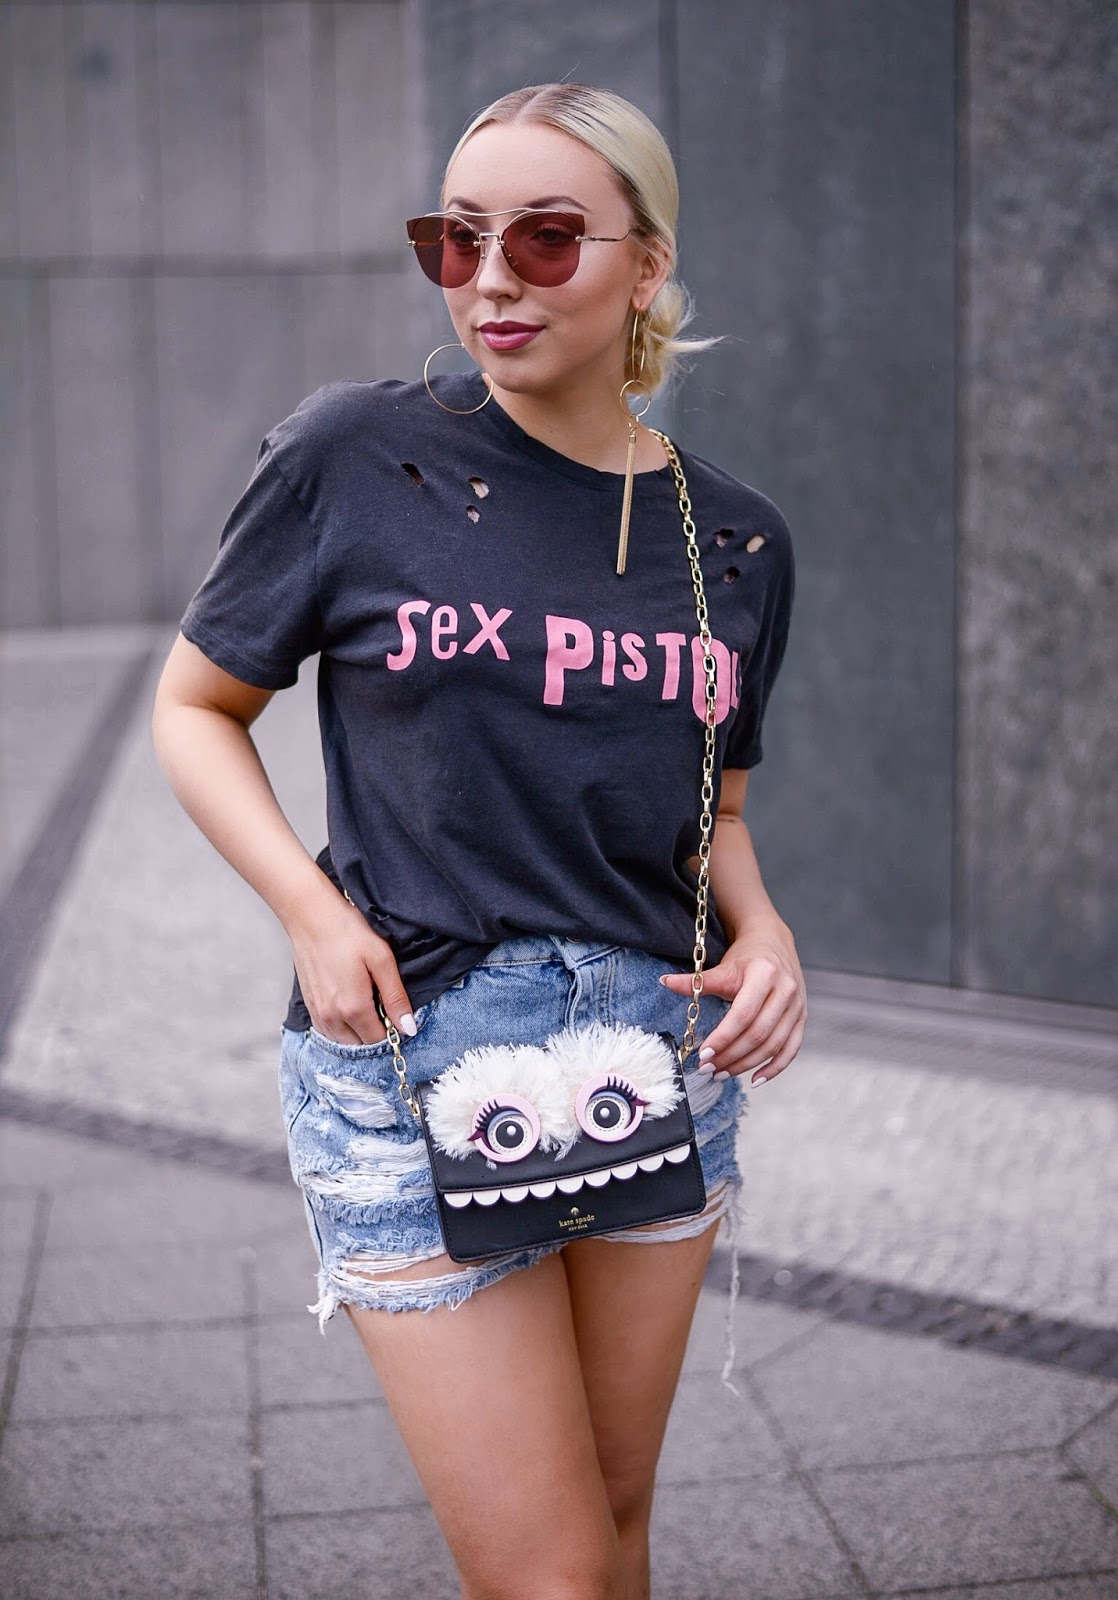 sex pistols_bandshirt_ripped denim shorts_kate spade bag